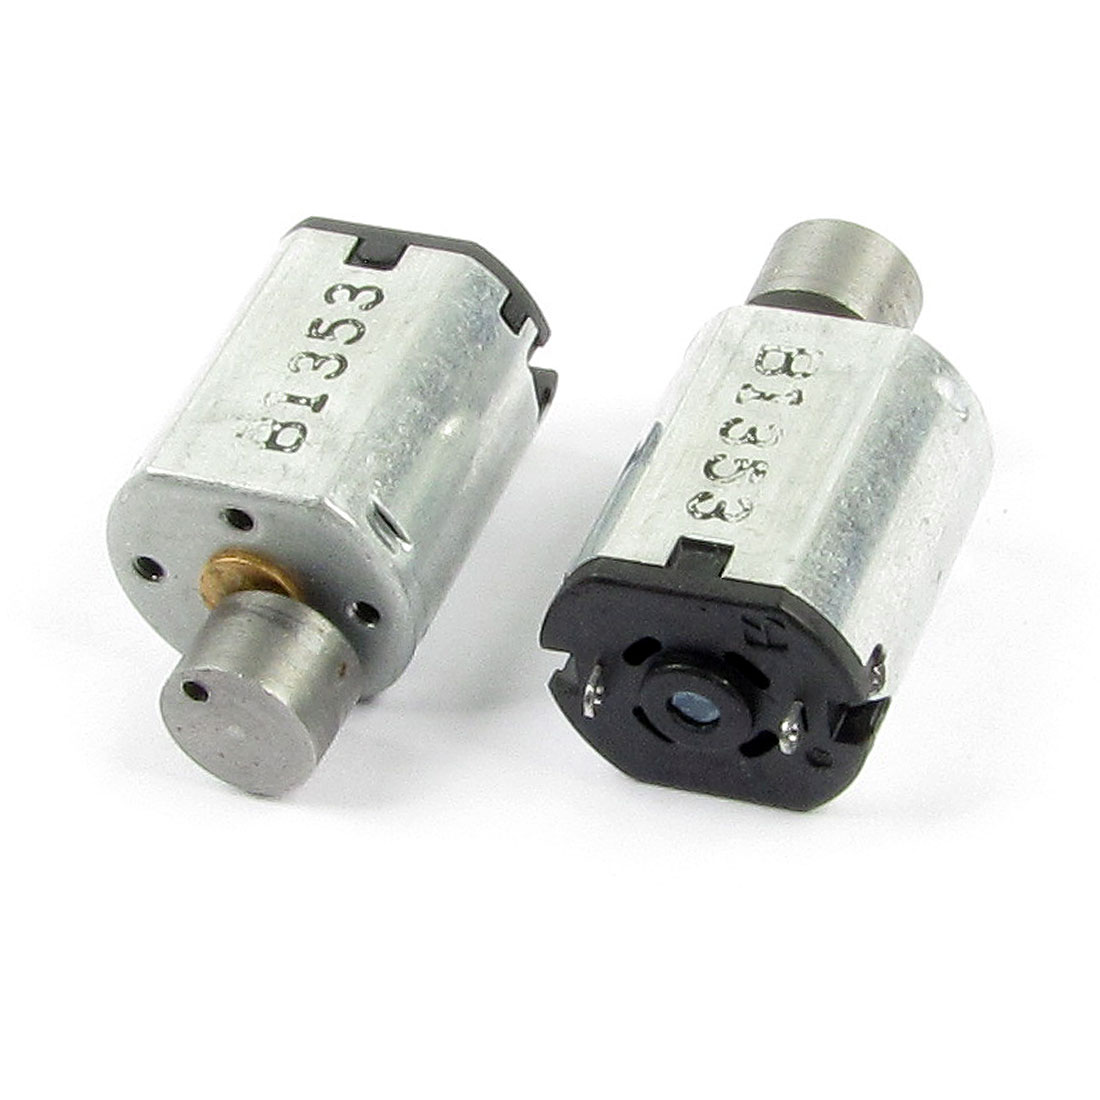 2pcs-9000RPM-DC-6V-0-06A-Magnetic-Vibrating-Vibration-Mini-Motor